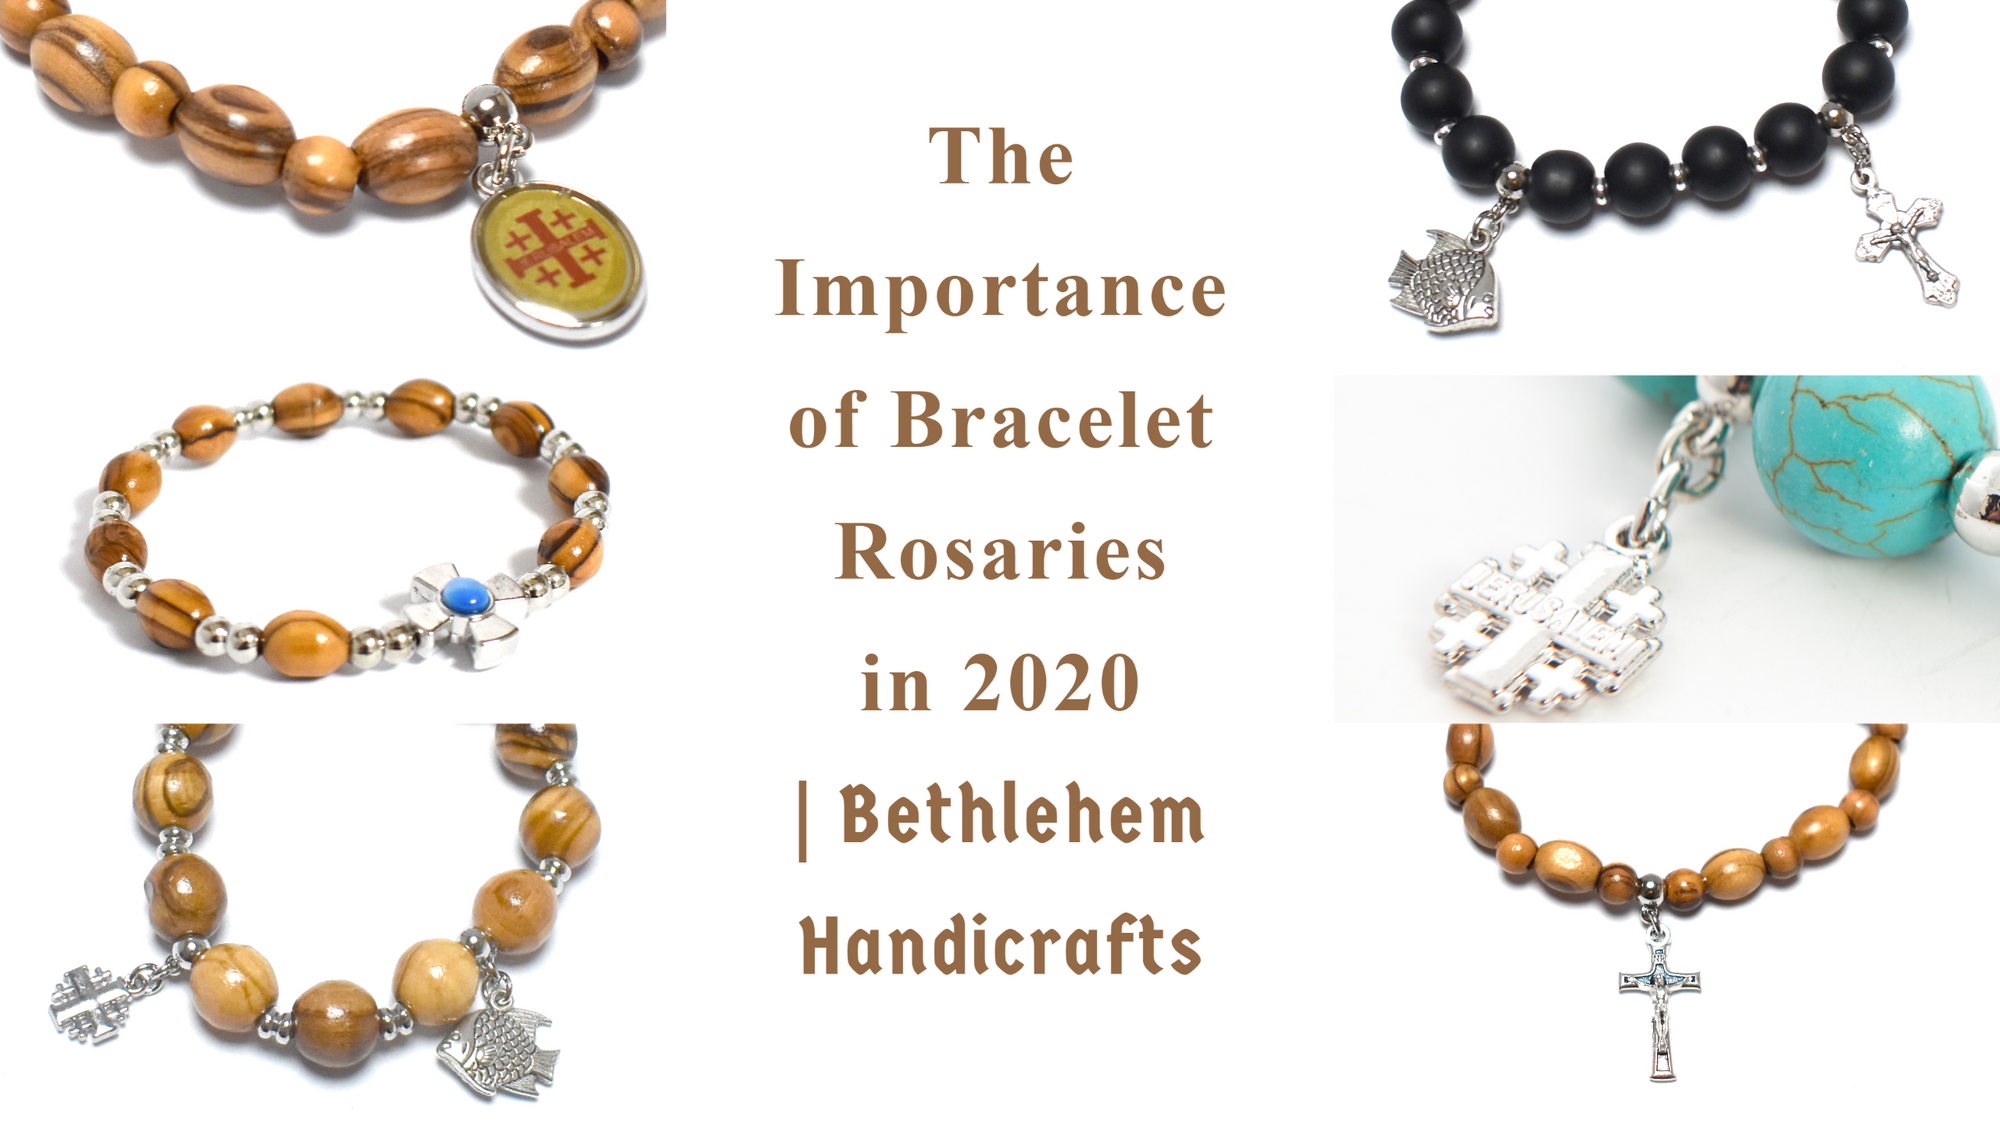 The Importance of Bracelet Rosaries in 2020 | Bethlehem Handicrafts